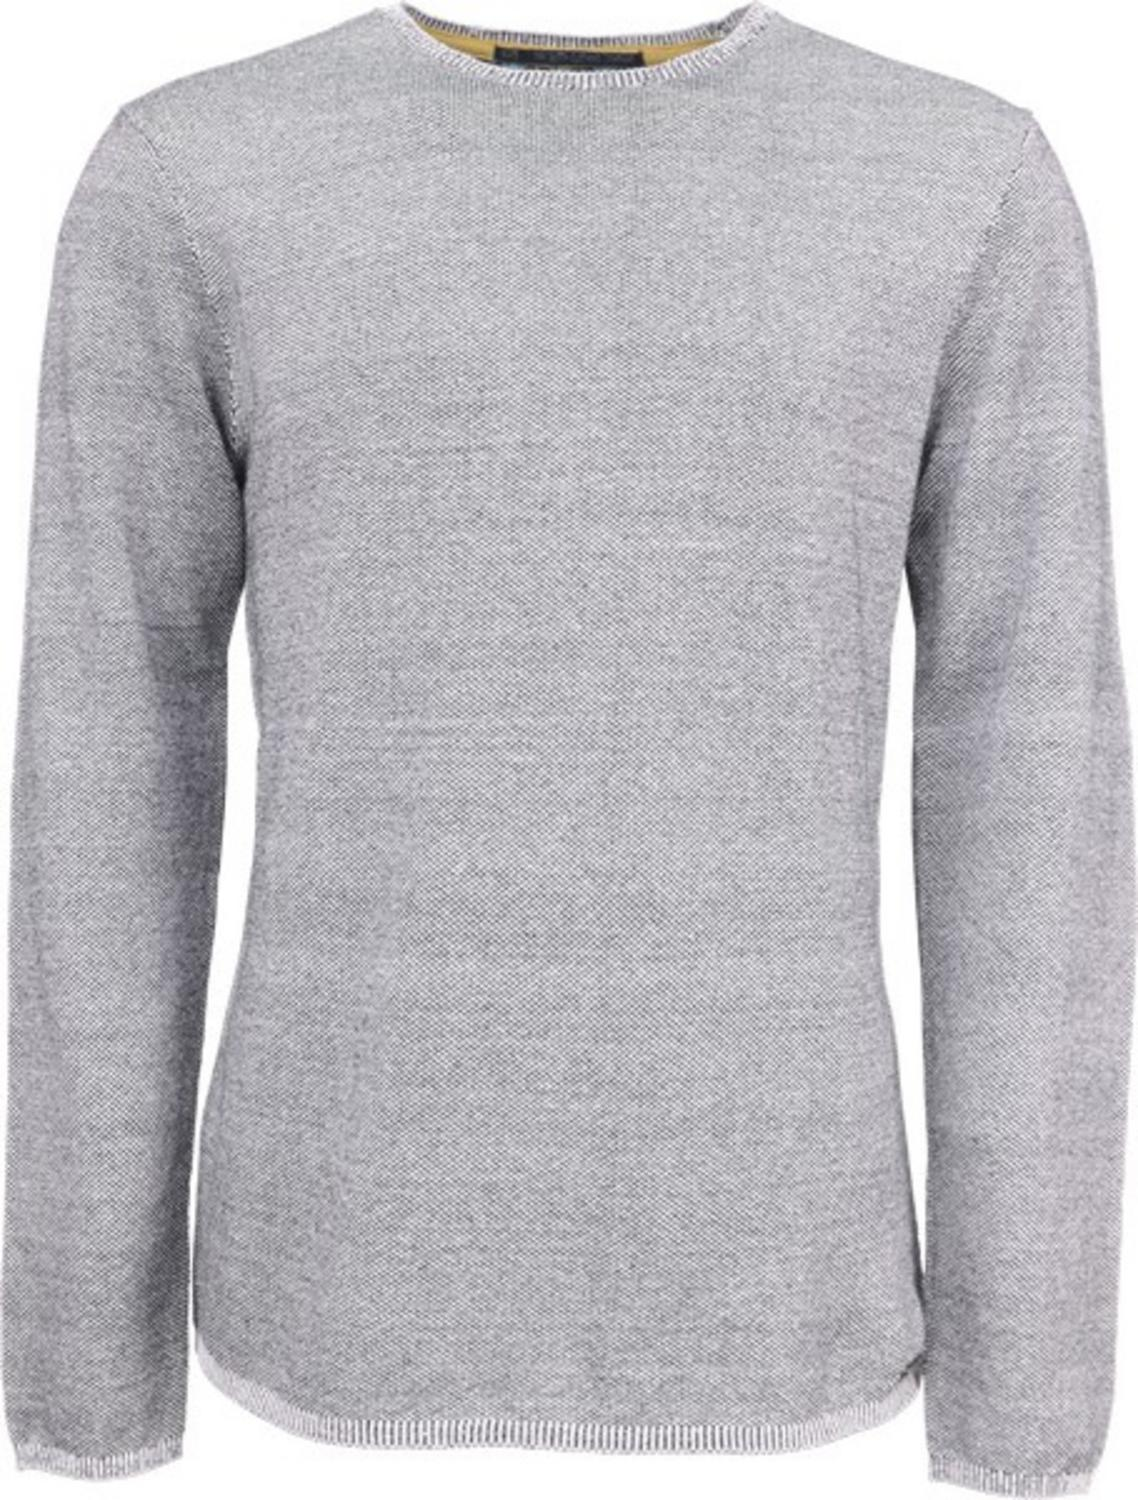 Pullover R-neck, high twisted 2col jacquard, fine